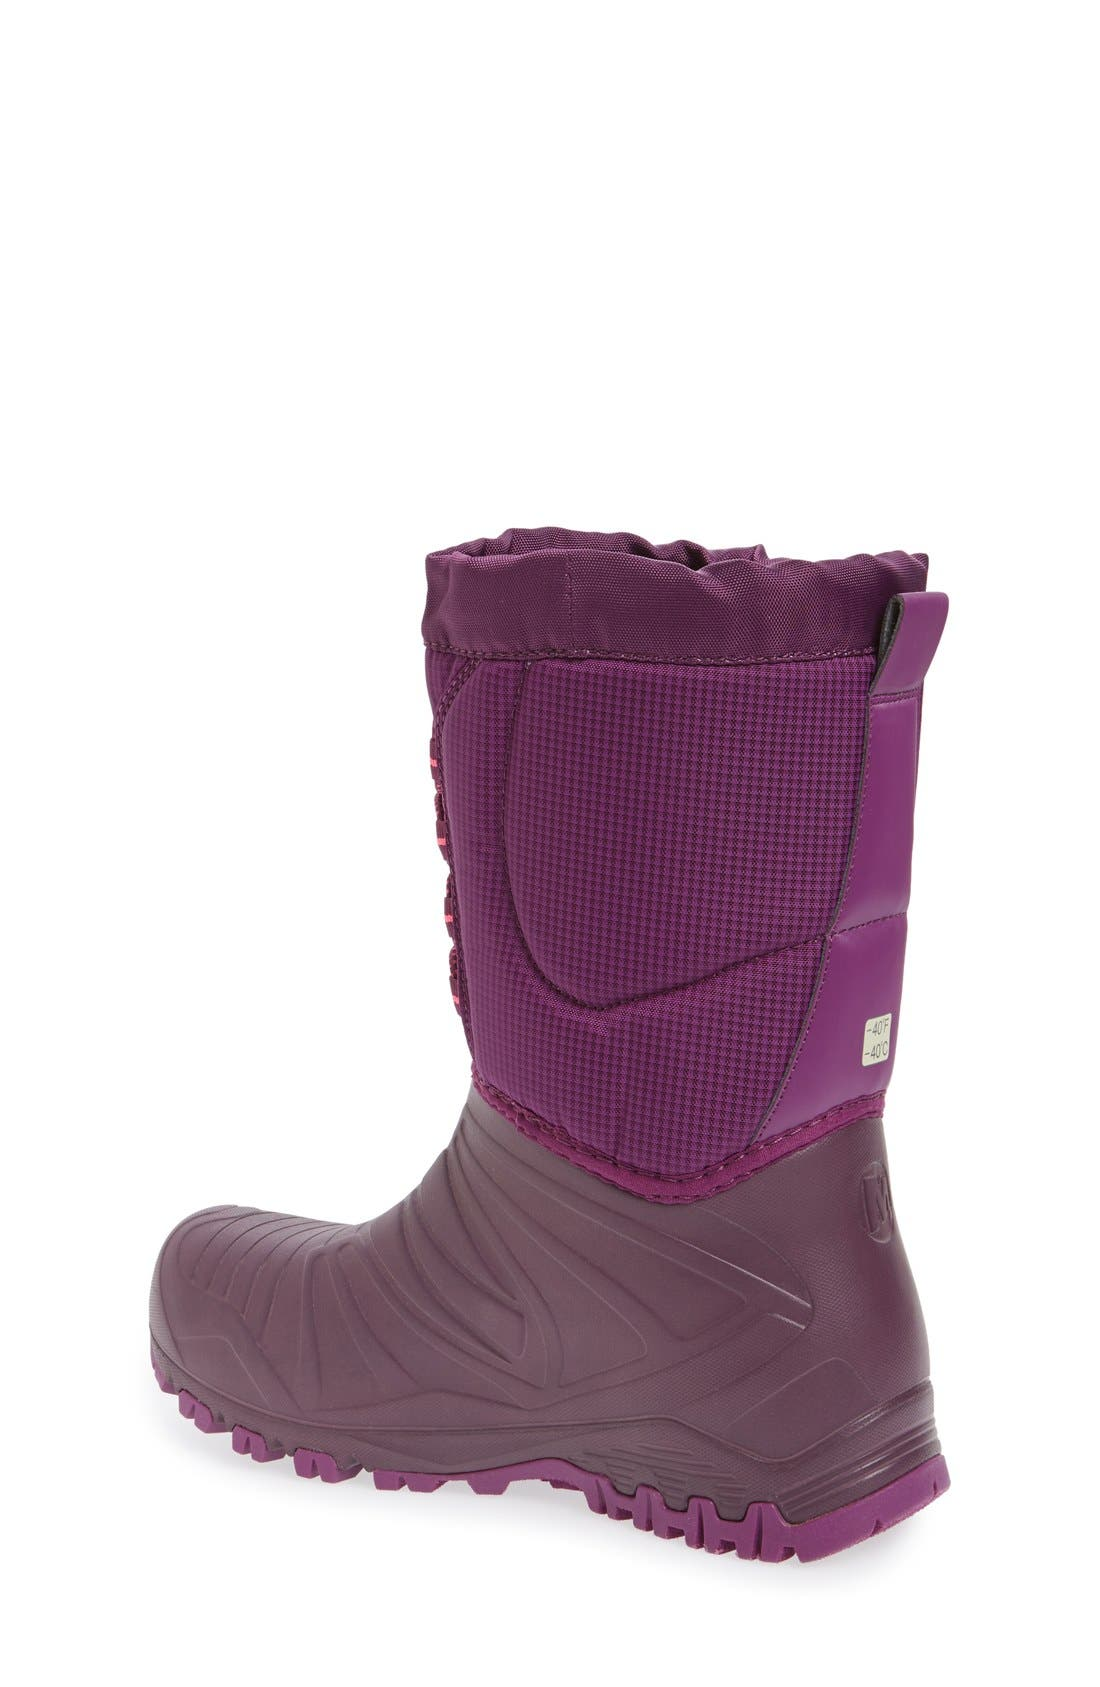 'Snow Quest' Waterproof Boot,                             Alternate thumbnail 2, color,                             Berry